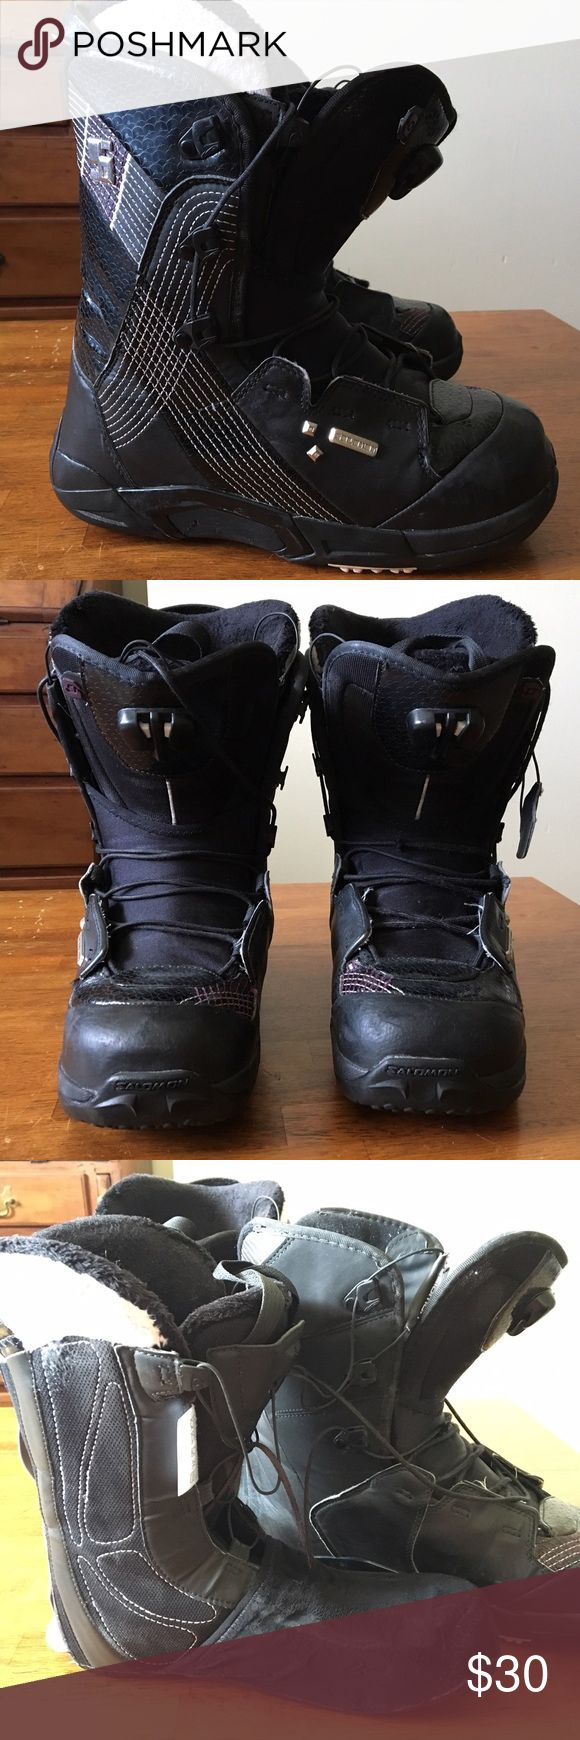 Salomon Snowboard Boots Women's 9 Used. See picture of the lining. I've worn these a couple of years but there's still life in them. One lace has frayed but still works great. The boots and linings both have their own adjustment cords. Salomon Shoes Winter & Rain Boots